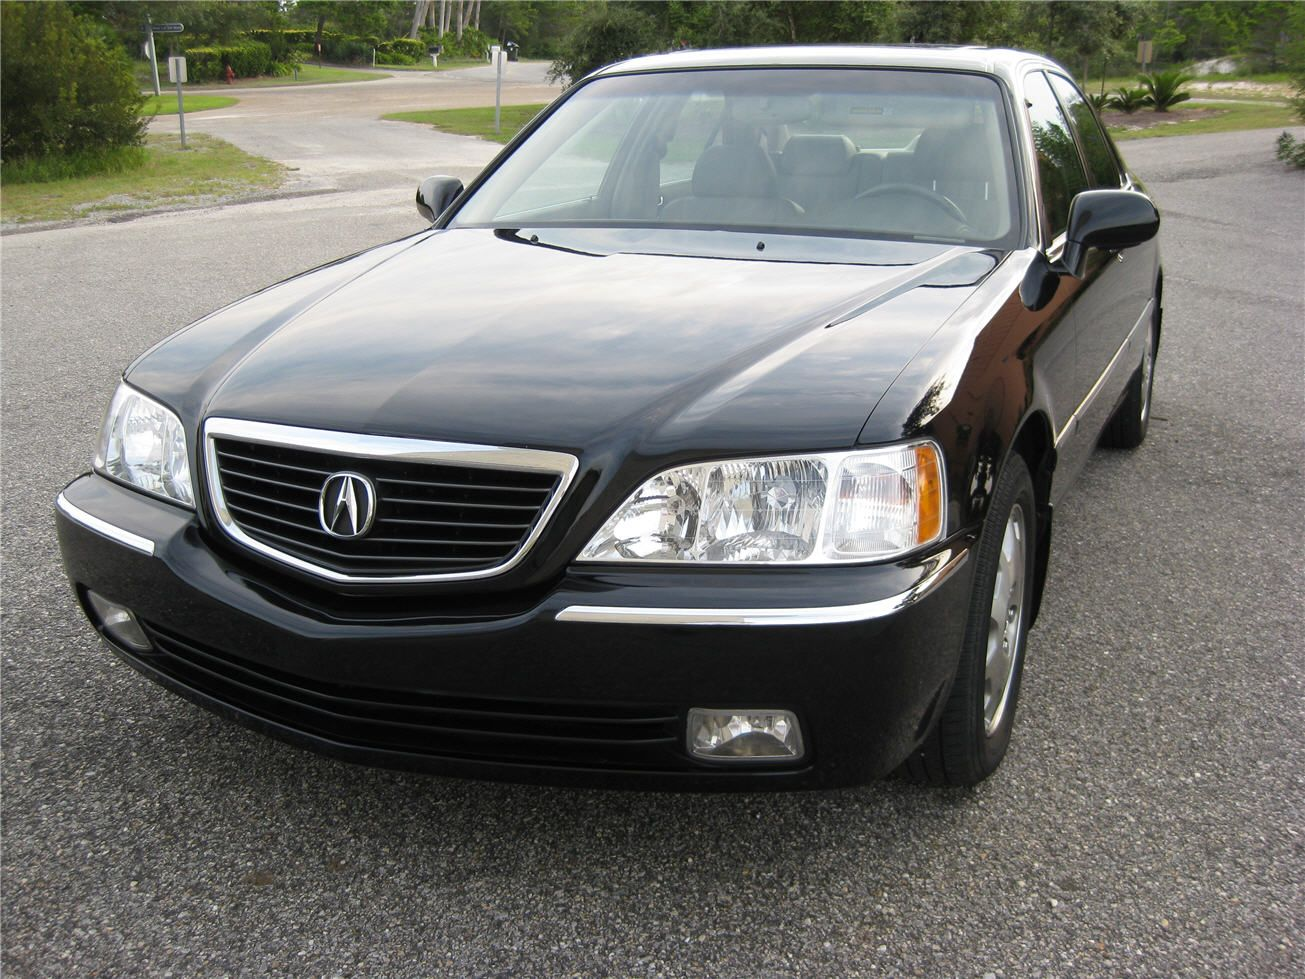 pin by www rpmgo com on automotive articles pinterest cars rh pinterest co  uk 1999 acura 3.5 rl owner's manual 1999 acura rl service manual